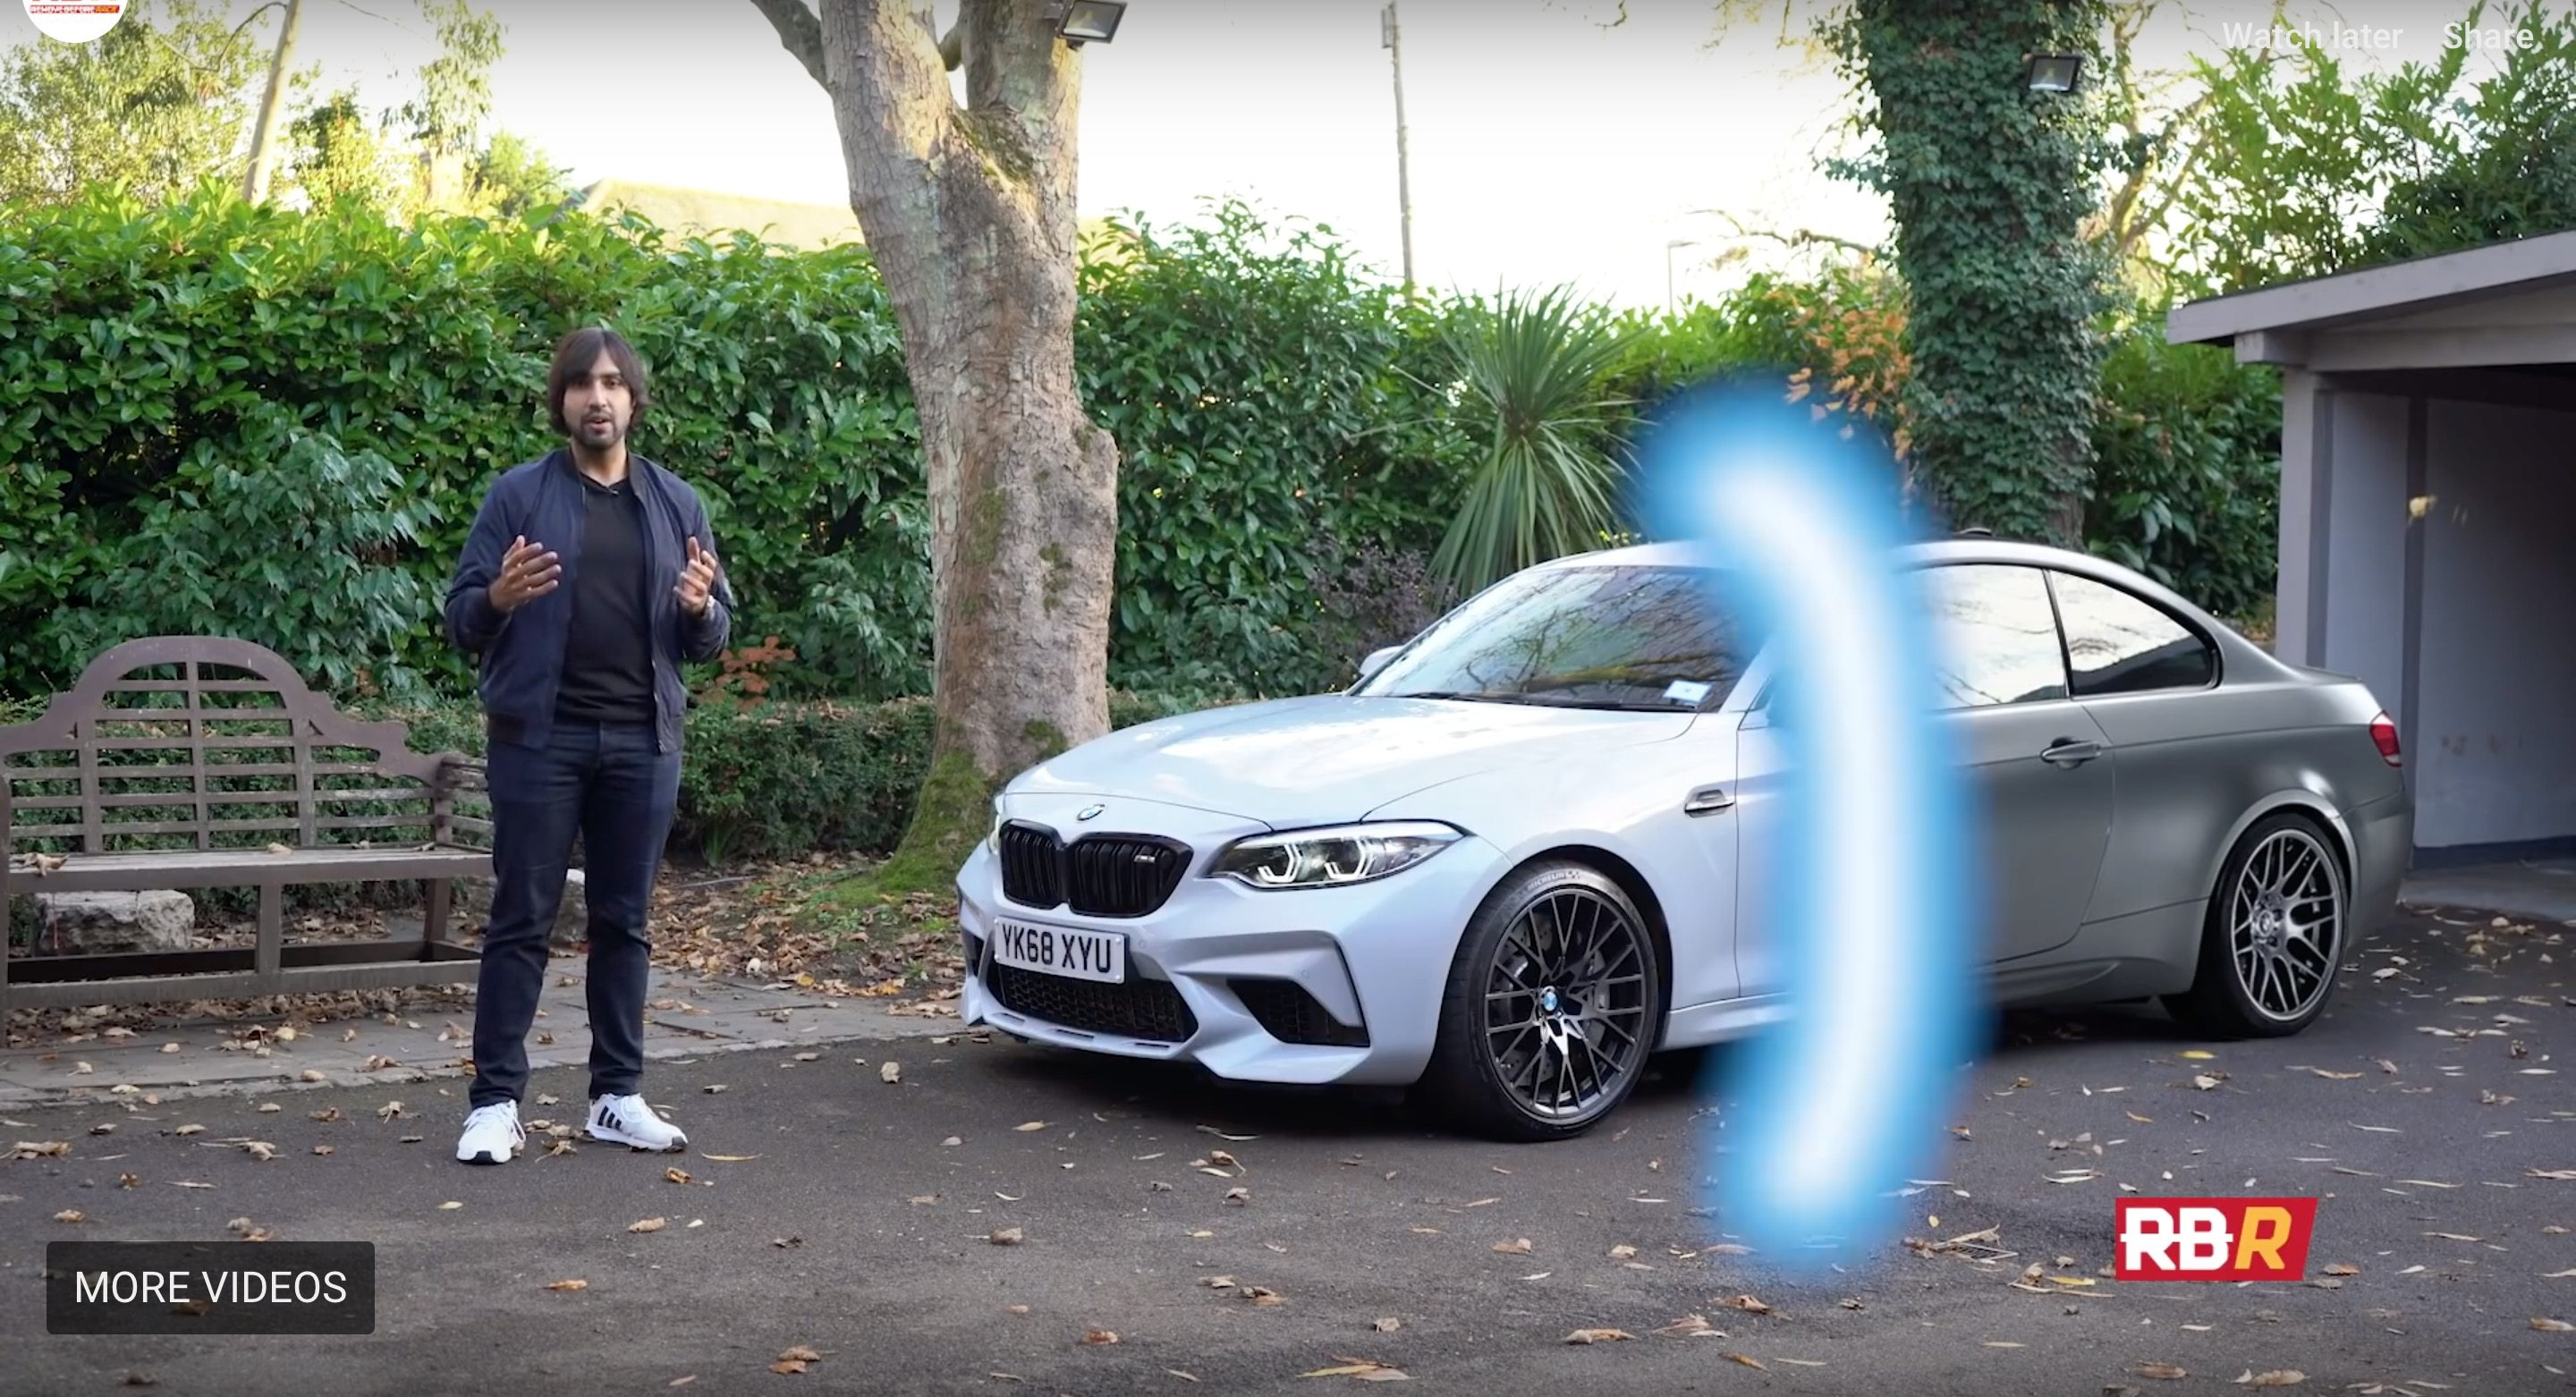 Excellent Bmw M2 Competition Review By Remove Before Race With Some M History Thrown In